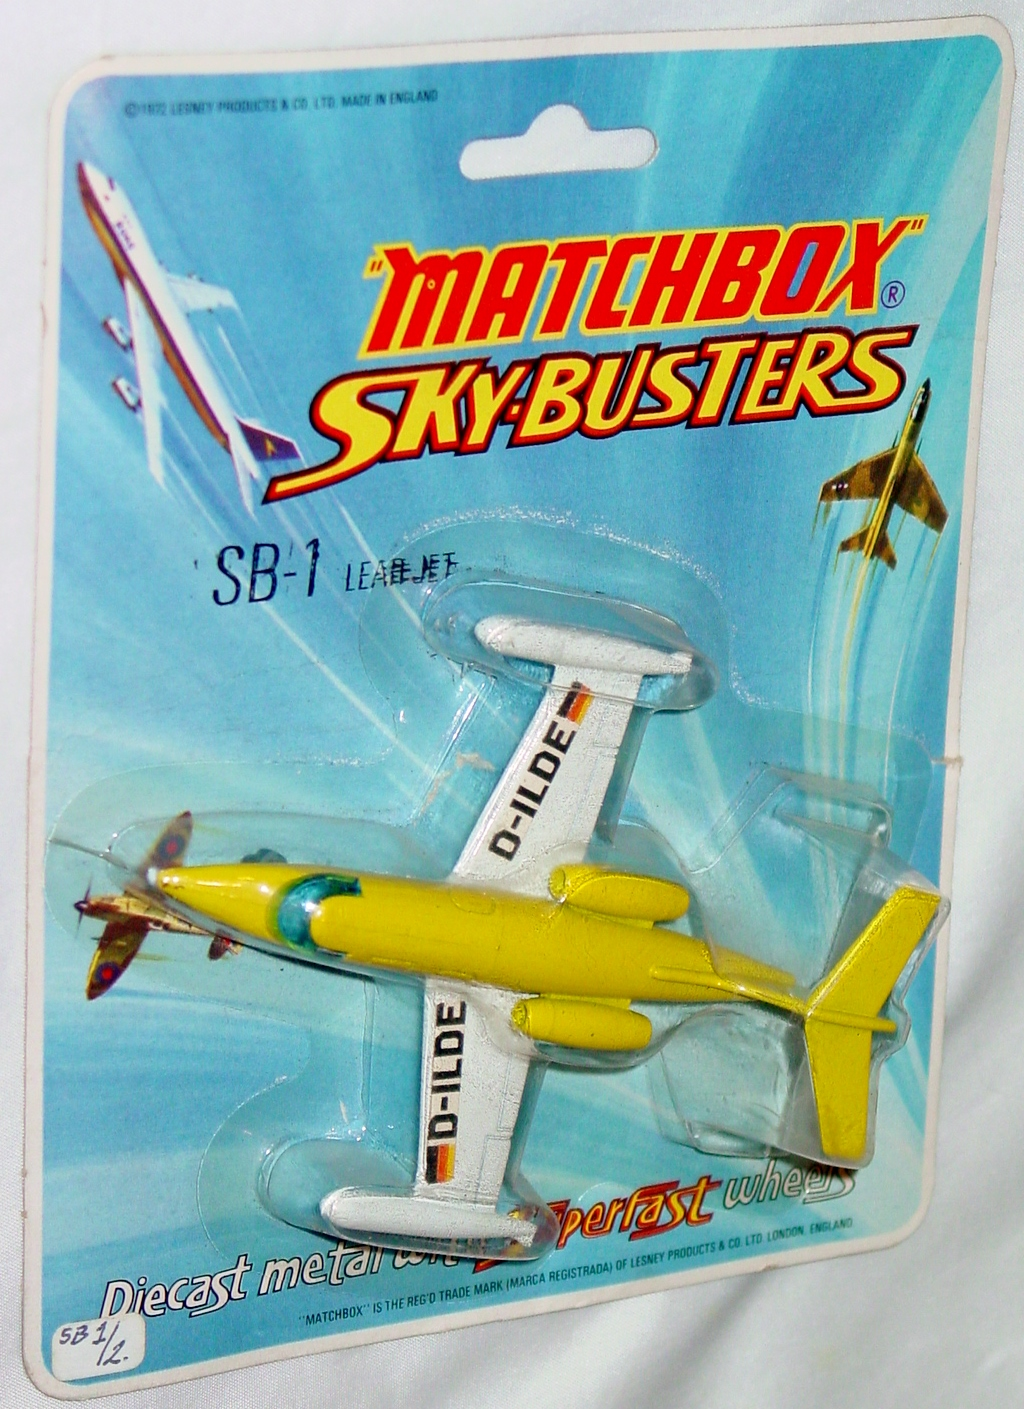 Sky Buster 01 A 1 - Leer Jet Yellow thin axles ENGLAND cut blister